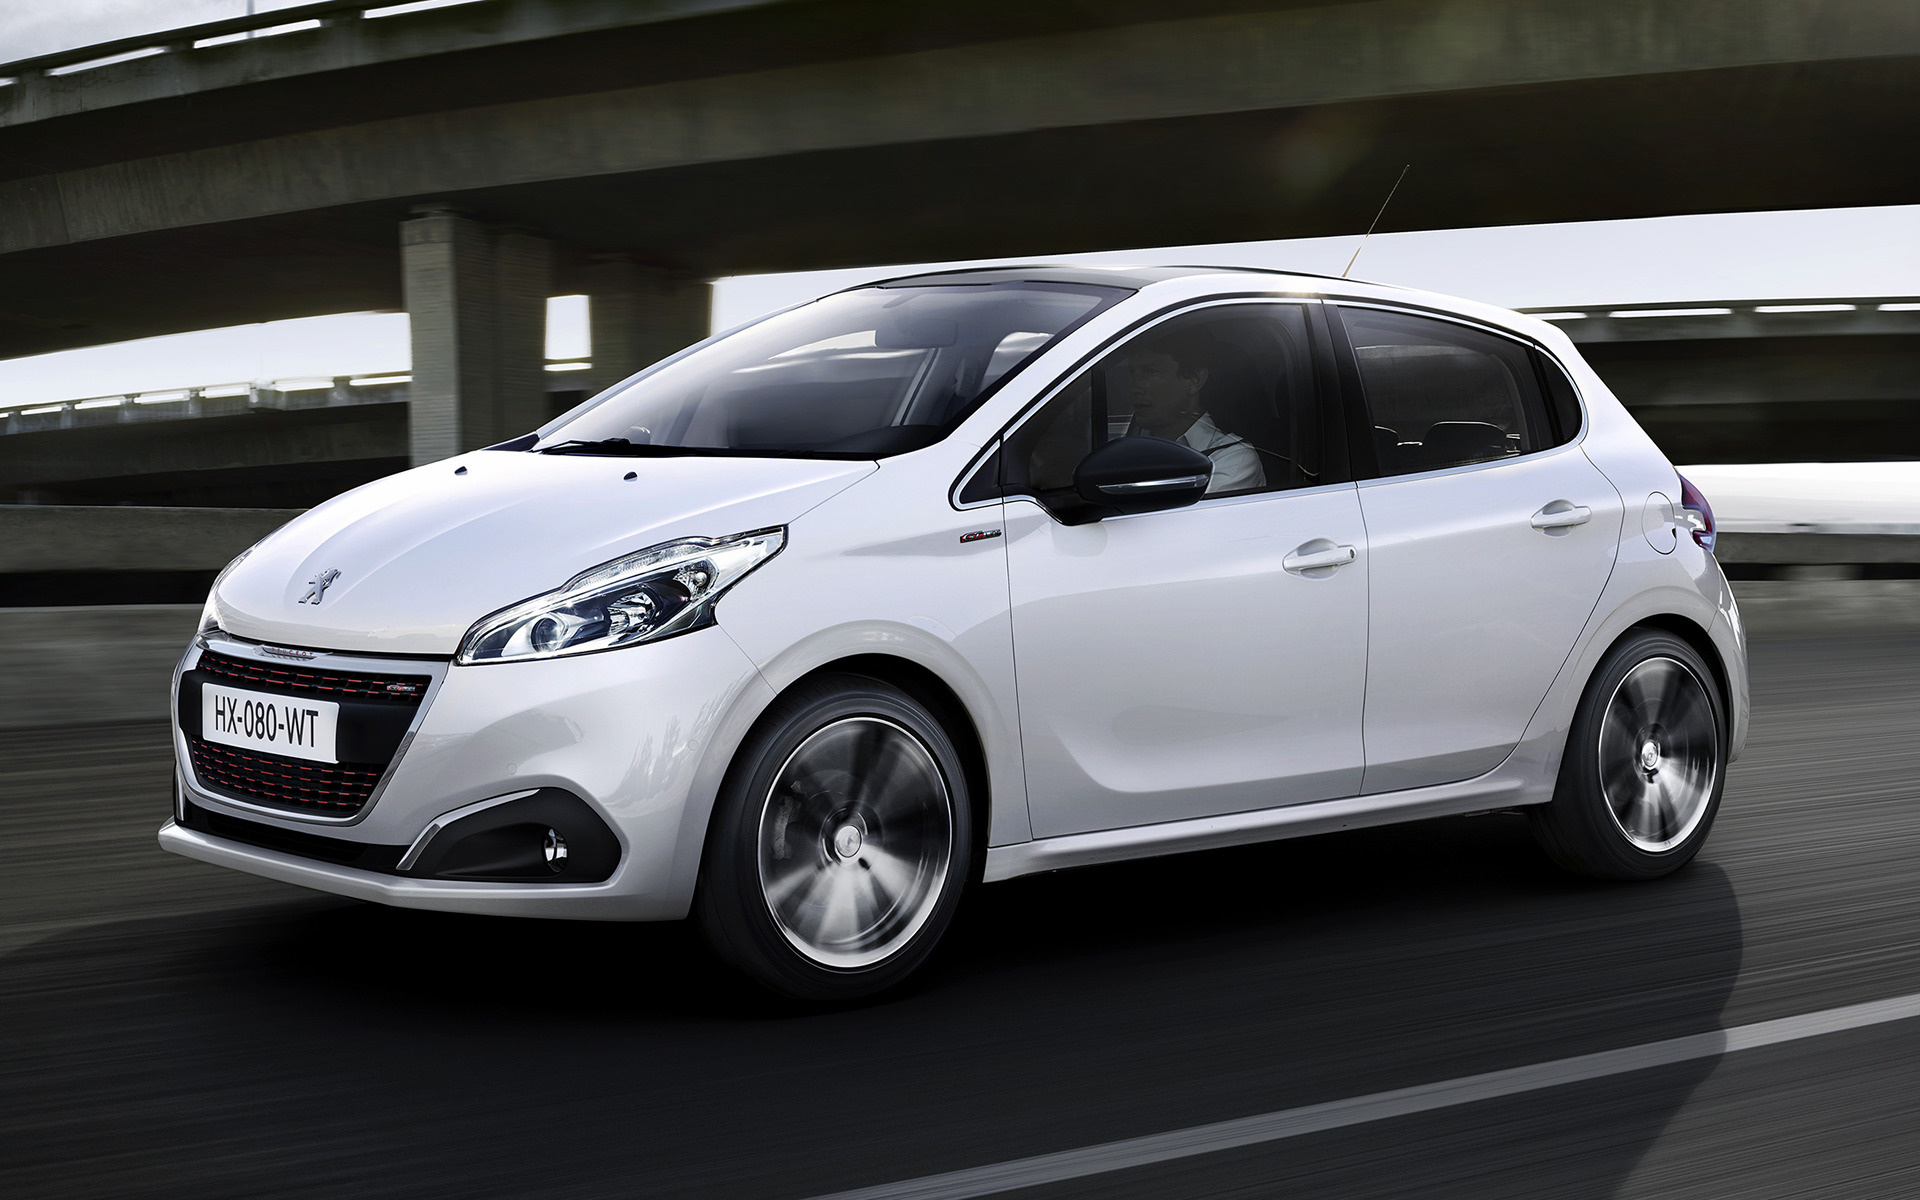 Suzuki Car Wallpaper 2015 Peugeot 208 Gt Line 5 Door Wallpapers And Hd Images